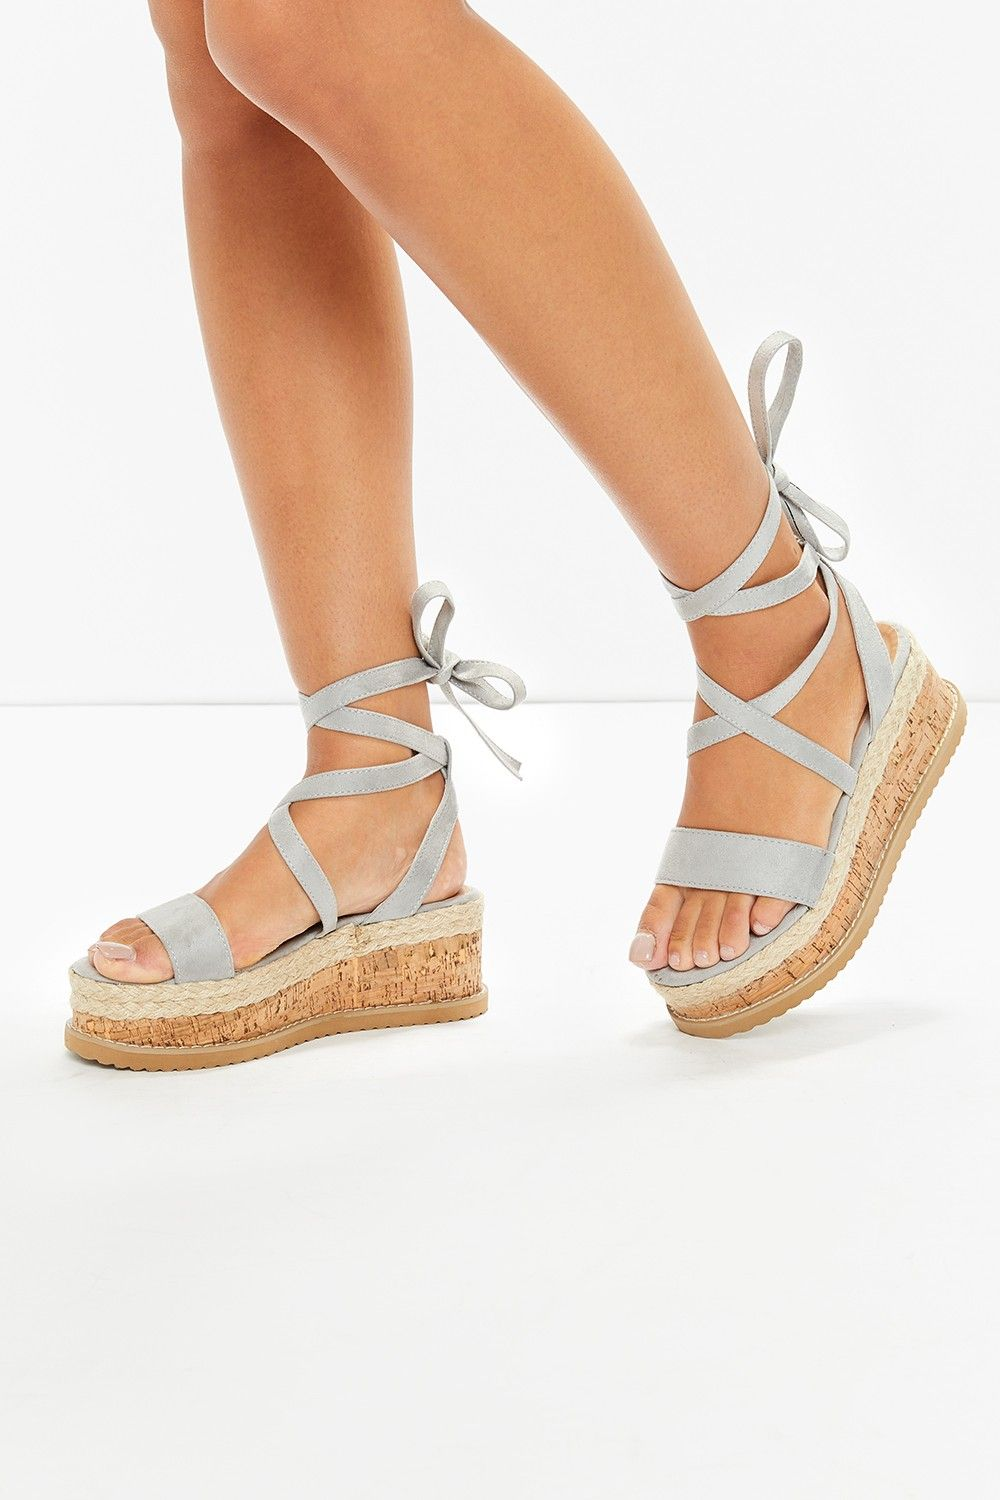 b27ab2dcc5fd Ariella Grey Suede Tie Up Espadrille Platform Sandals in 2019 ...